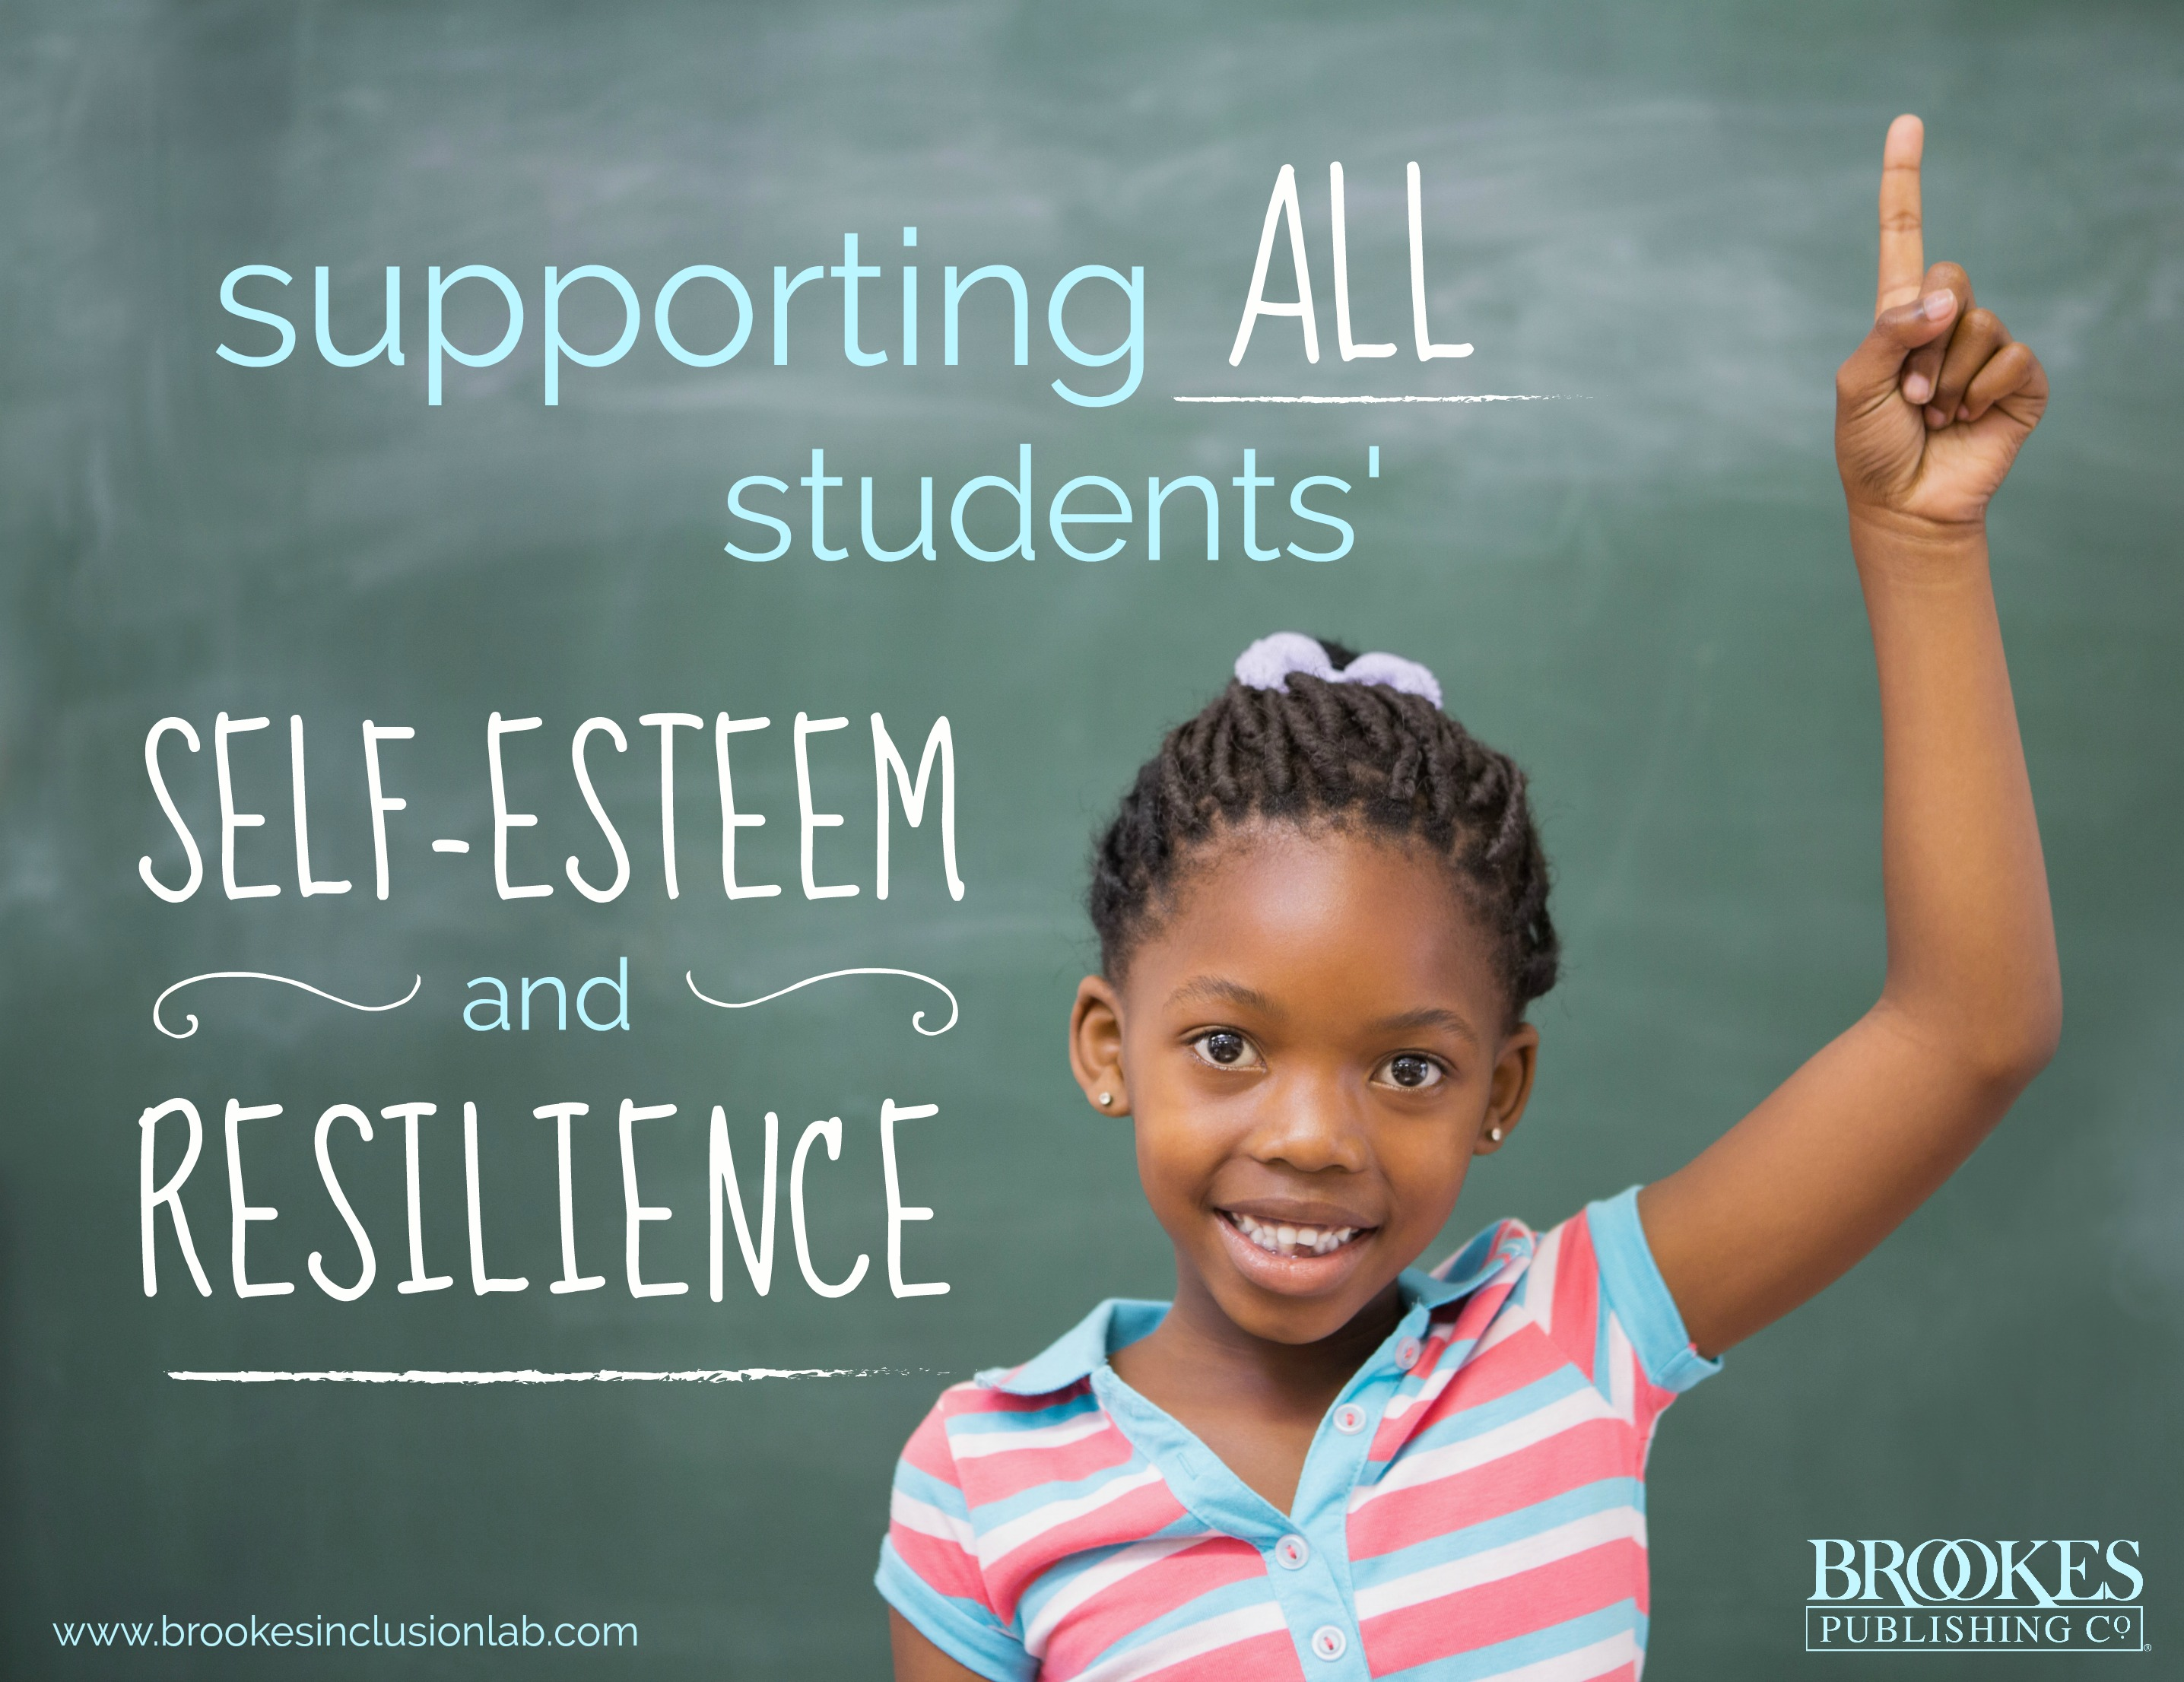 7 Ways To Foster Self Esteem And Resilience In All